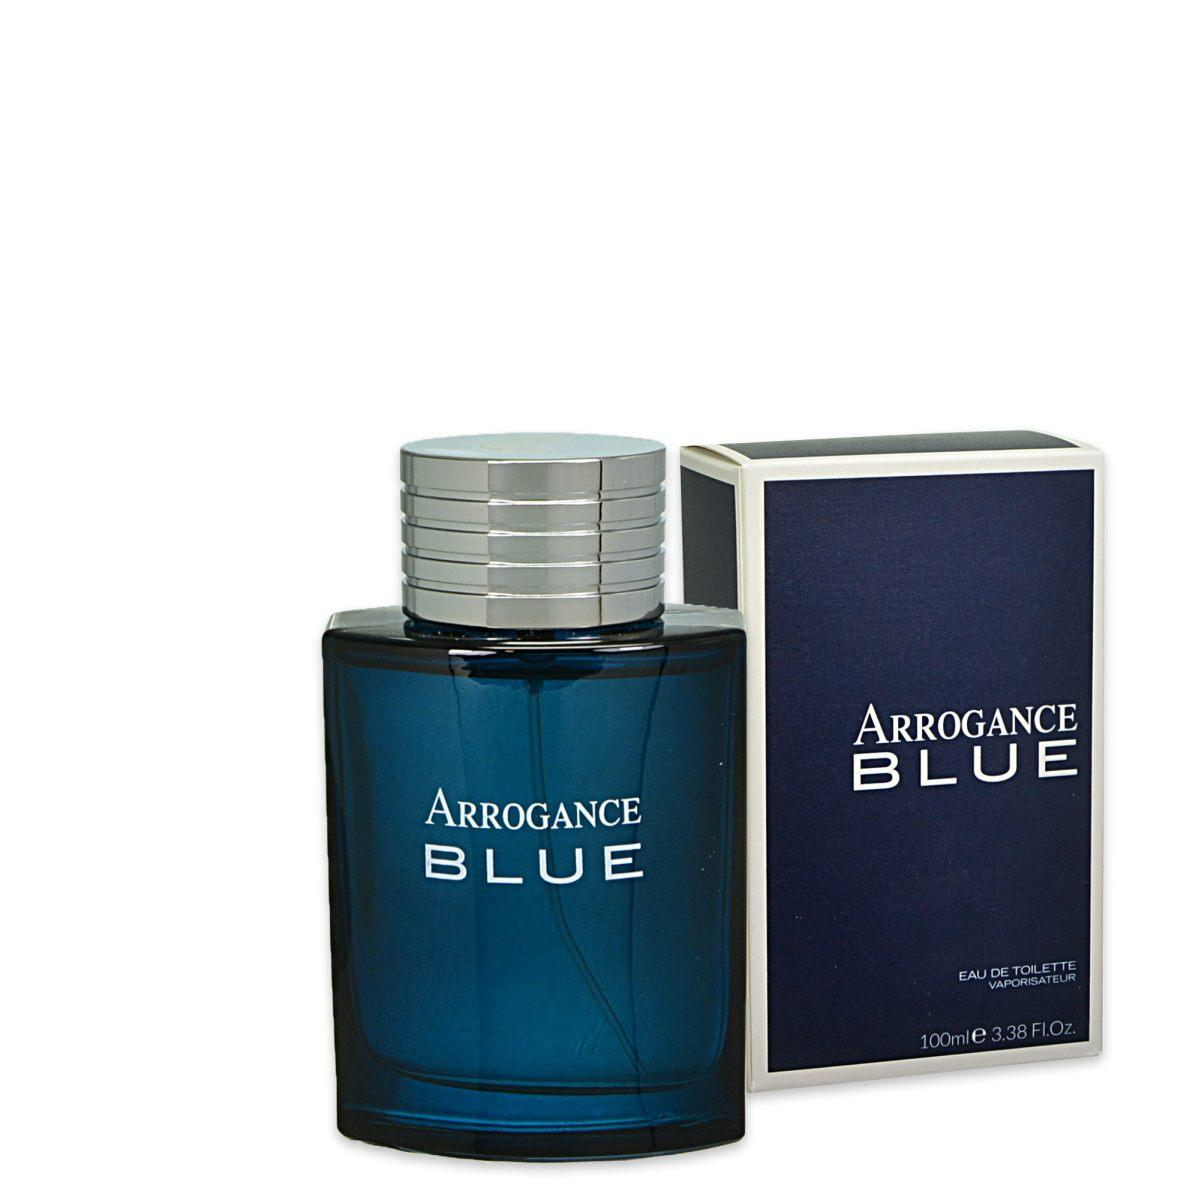 Arrogance Blue Profumo Uomo Edt Eau De Toilette Spray 100 Ml